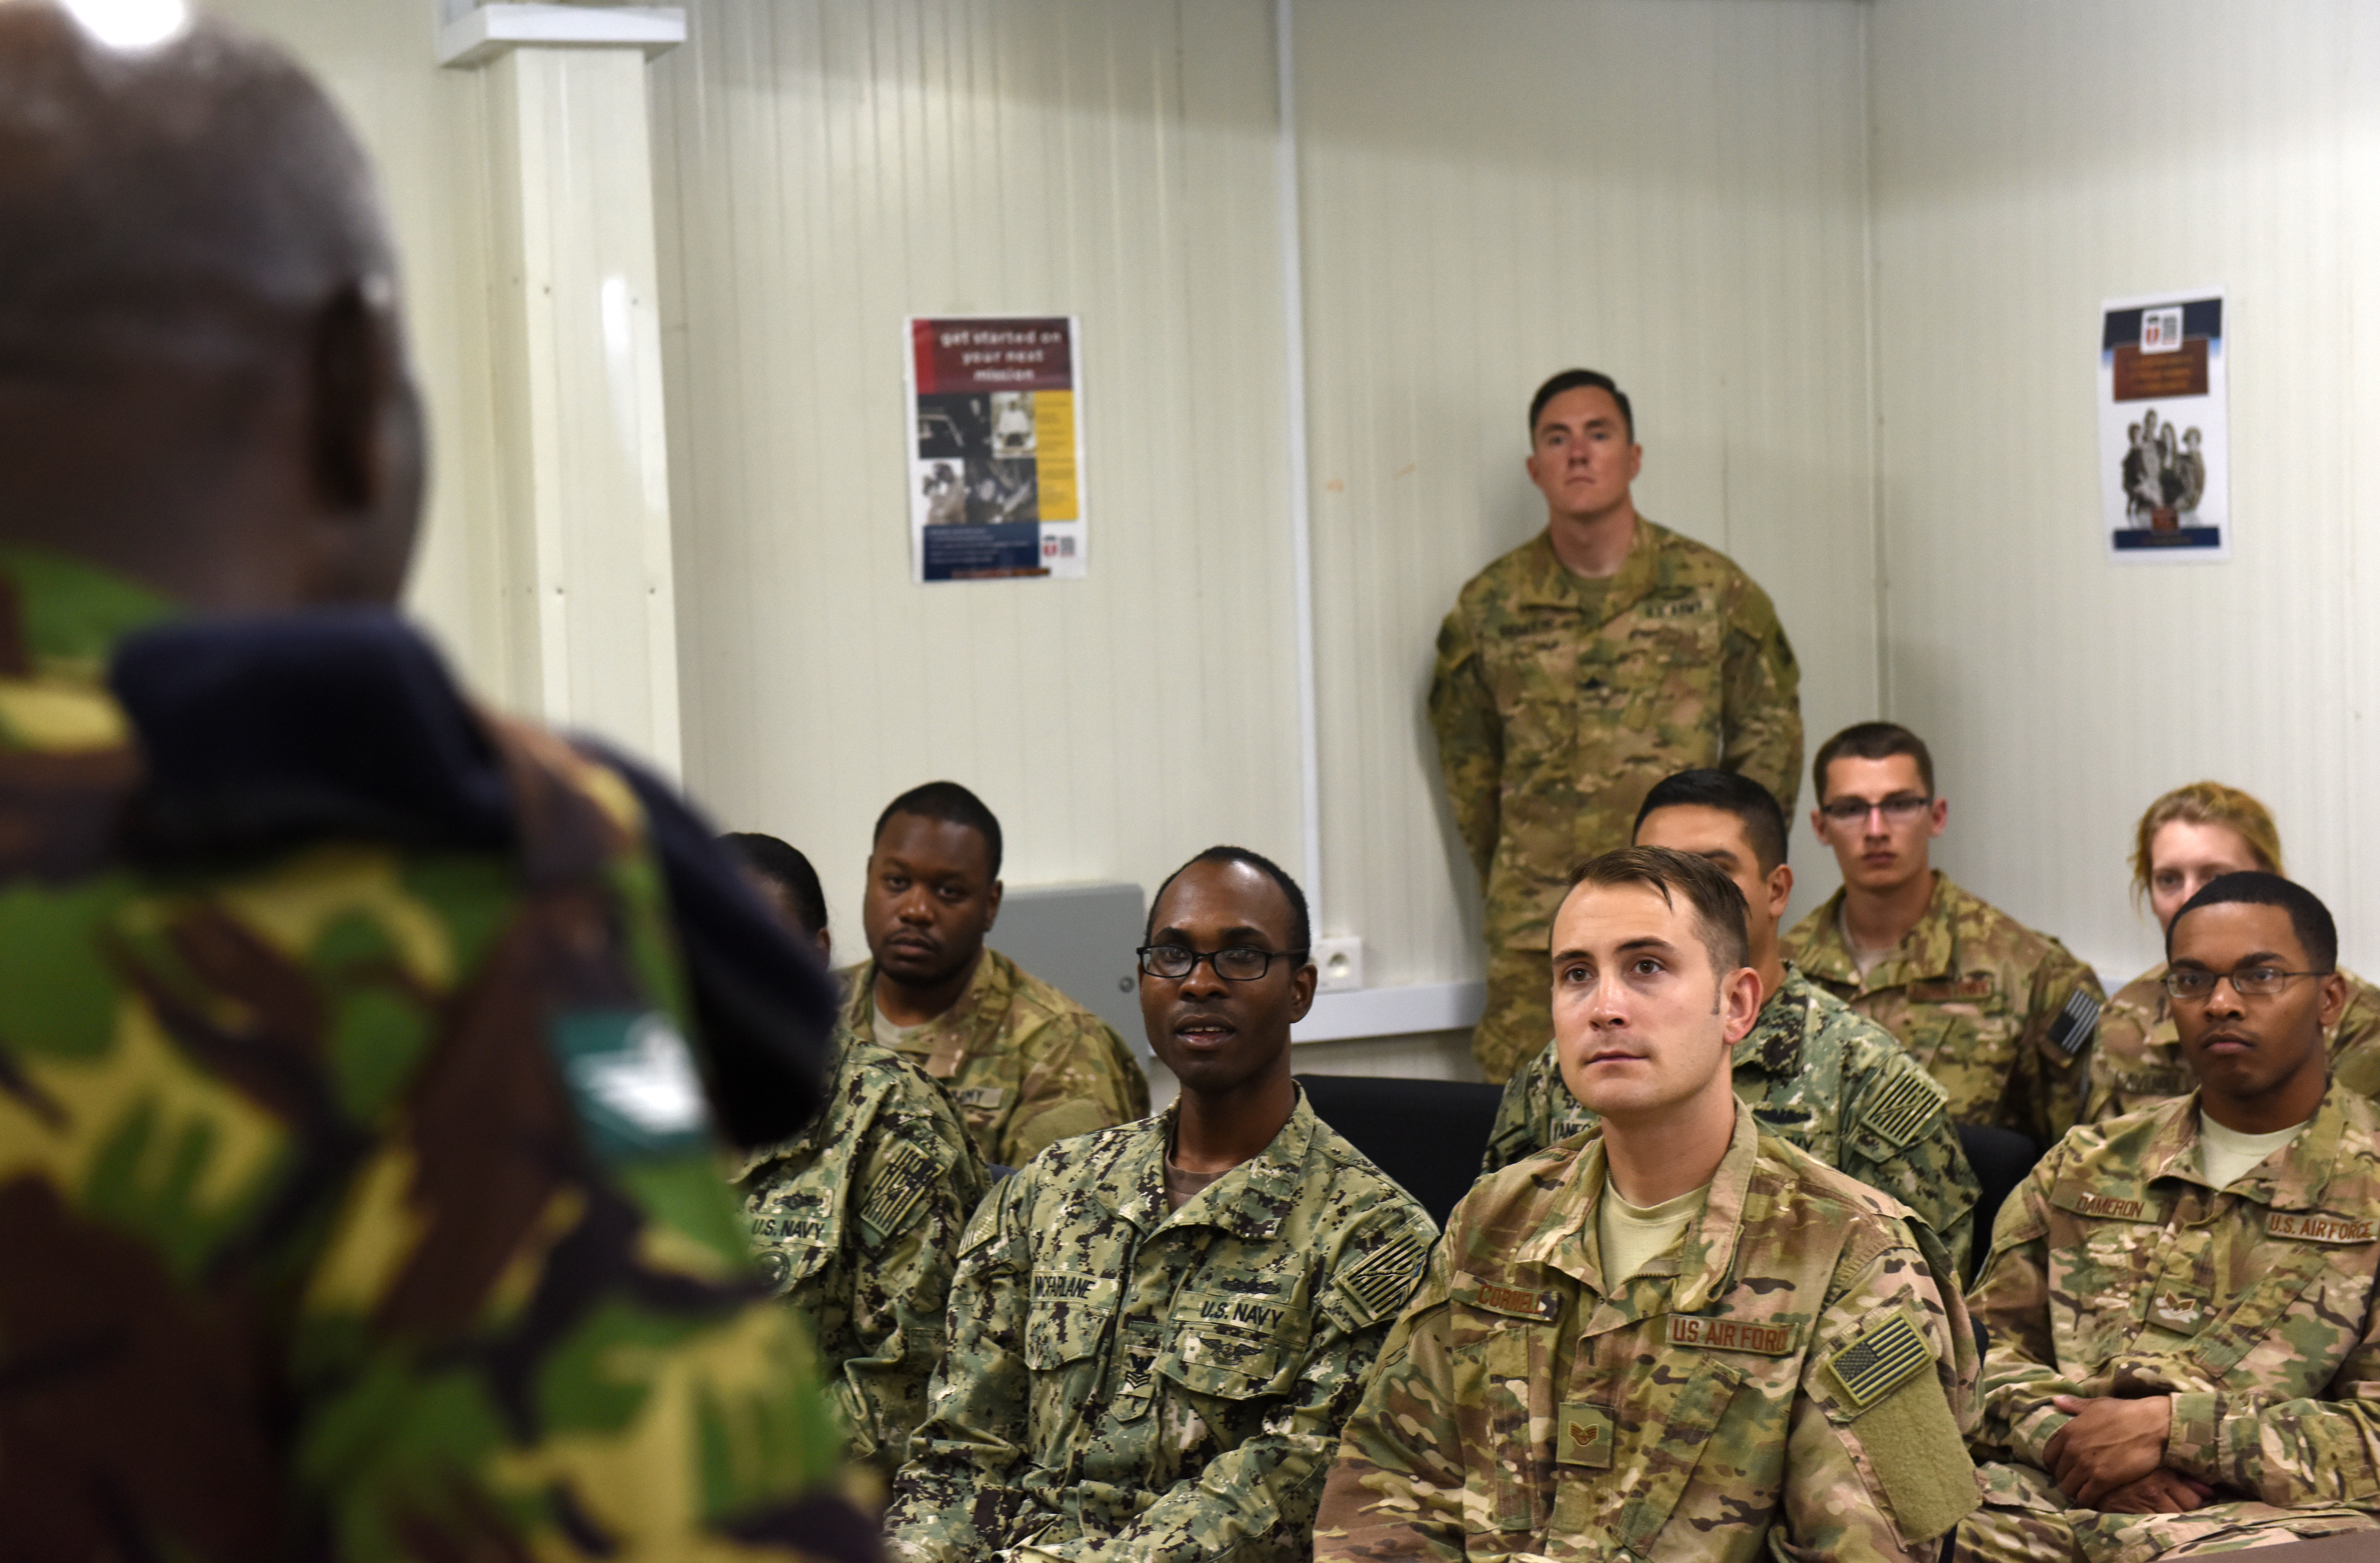 Warrant Officer John Muthoka, Kenya Defence Forces sergeant major, answers questions during a junior enlisted town hall meeting at Camp Lemonnier, Djibouti, as part of an SEL engagement Feb. 11, 2016. The four KDF SELs consisted of Muthoka and the ranking enlisted member of their army, air force and navy. (U.S. Air Force photo by Staff Sgt. Kate Thornton)